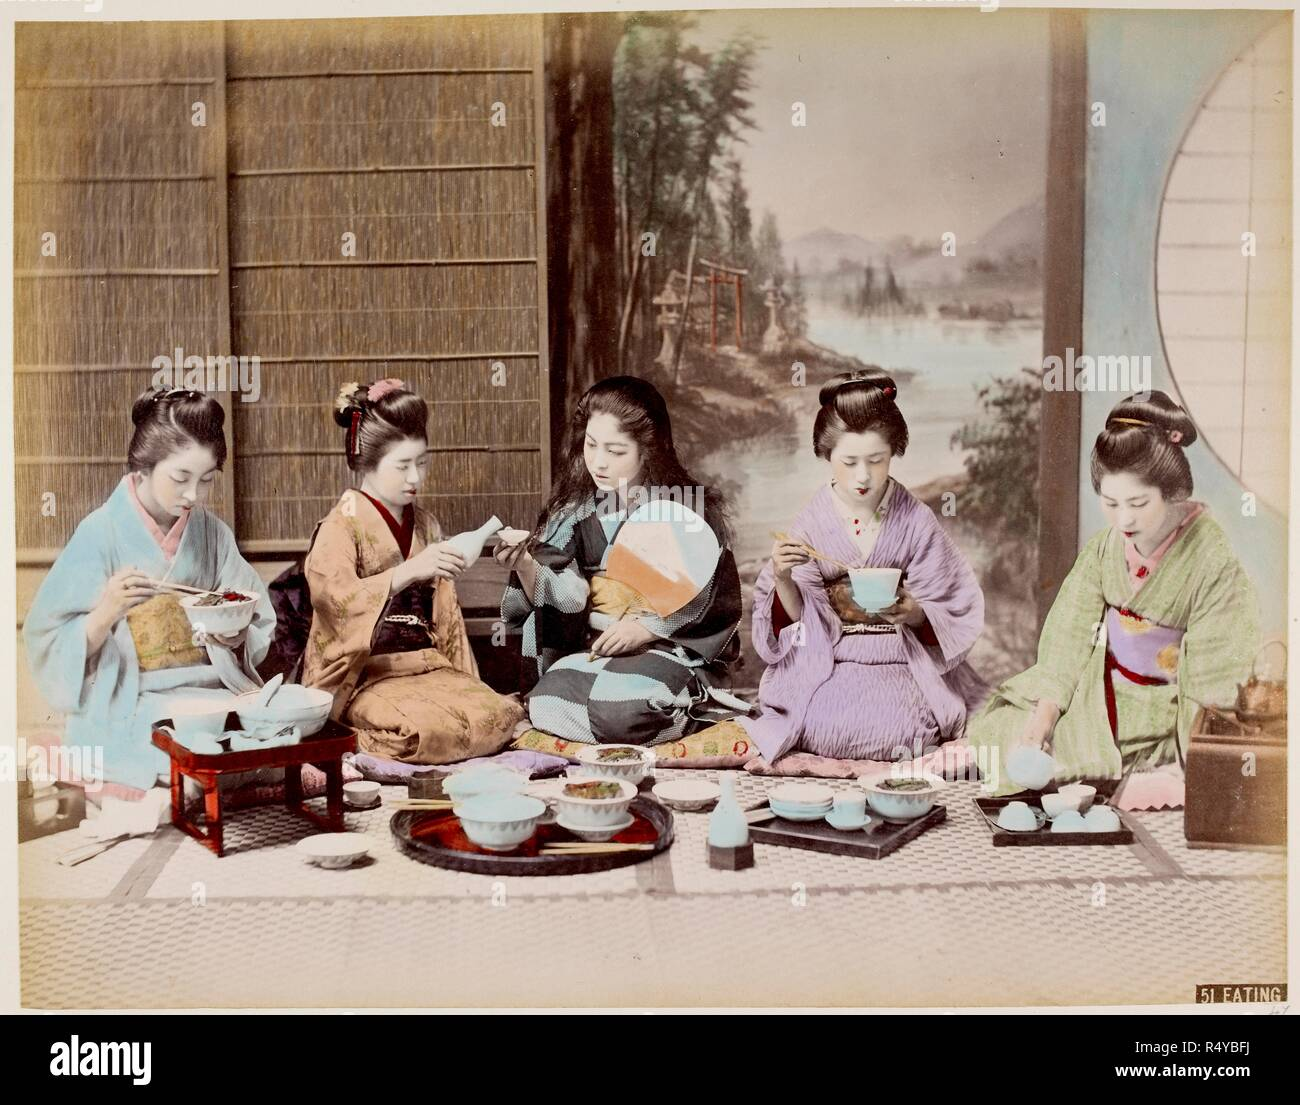 A group of Japanese women eating a meal in a traditional house. Wearing formal traditional costumes of kimono and obi with decorated dressed hair. Sitting on the floor. . Scenes from life in Japan. Circa 1880s Hand-coloured albumen print. Source: Photo 752/24 47. - Stock Image